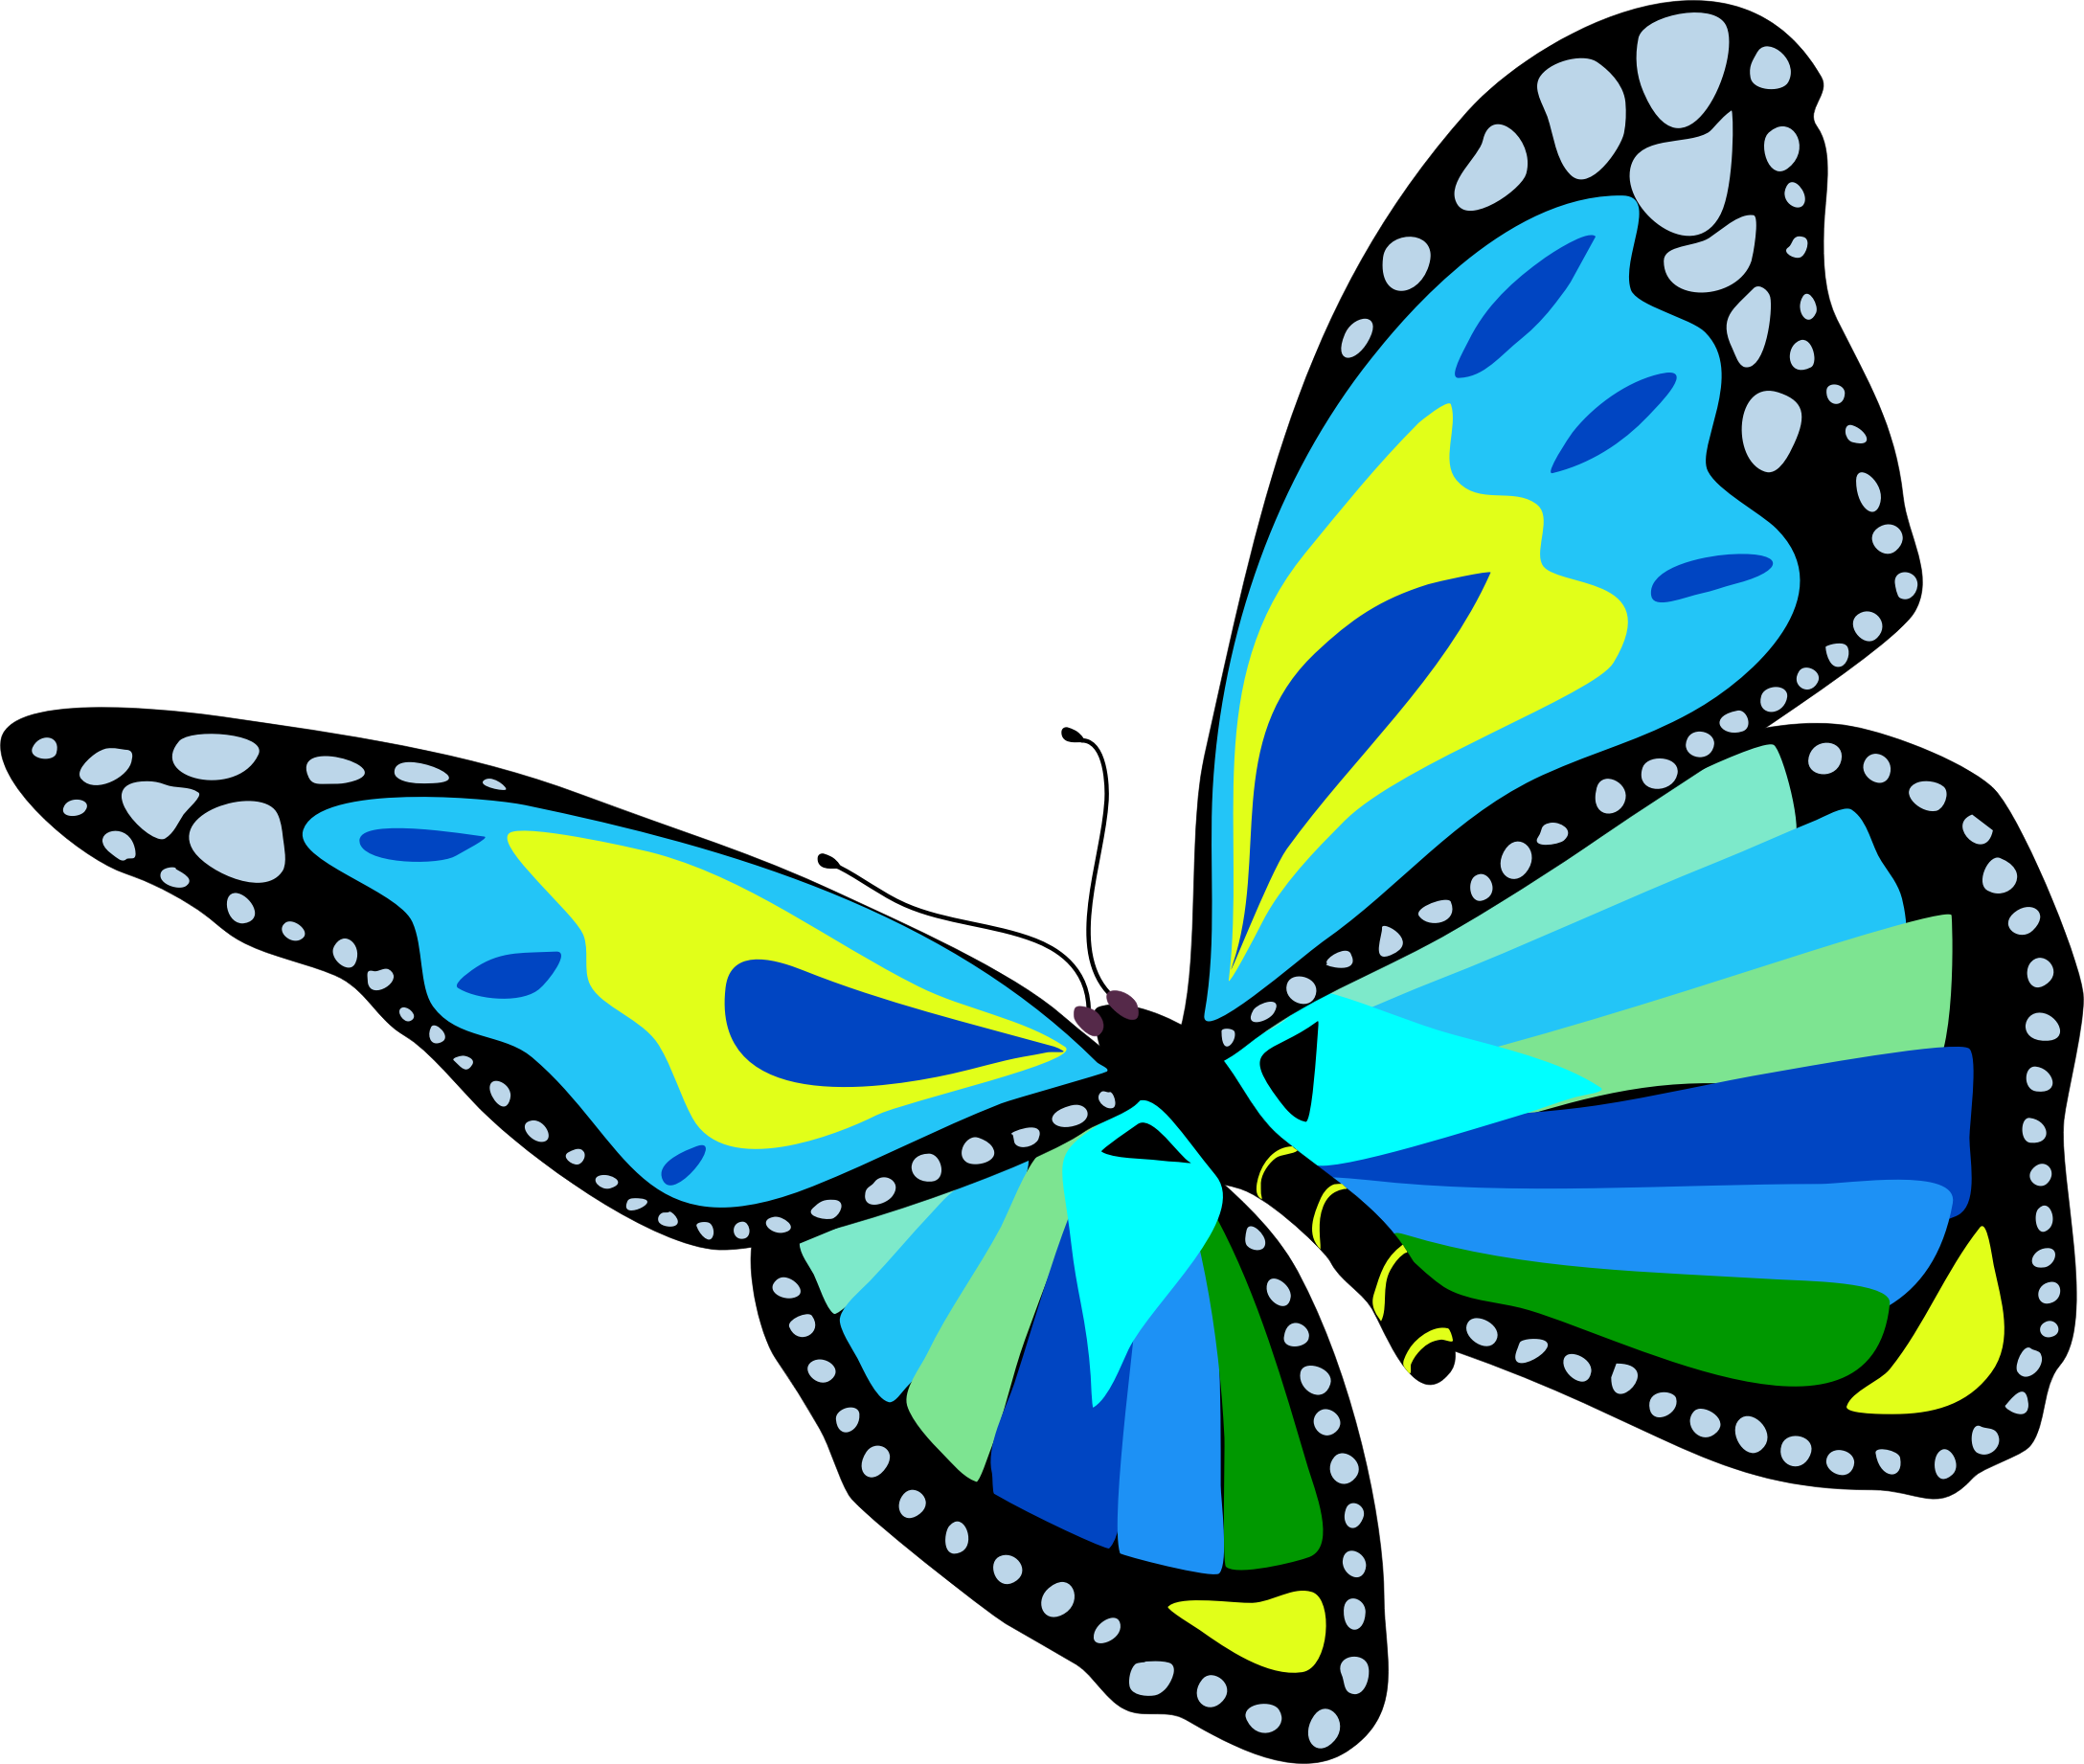 Flying butterfly clipart image clip art black and white download Flying butterfly clipart 8 » Clipart Station clip art black and white download